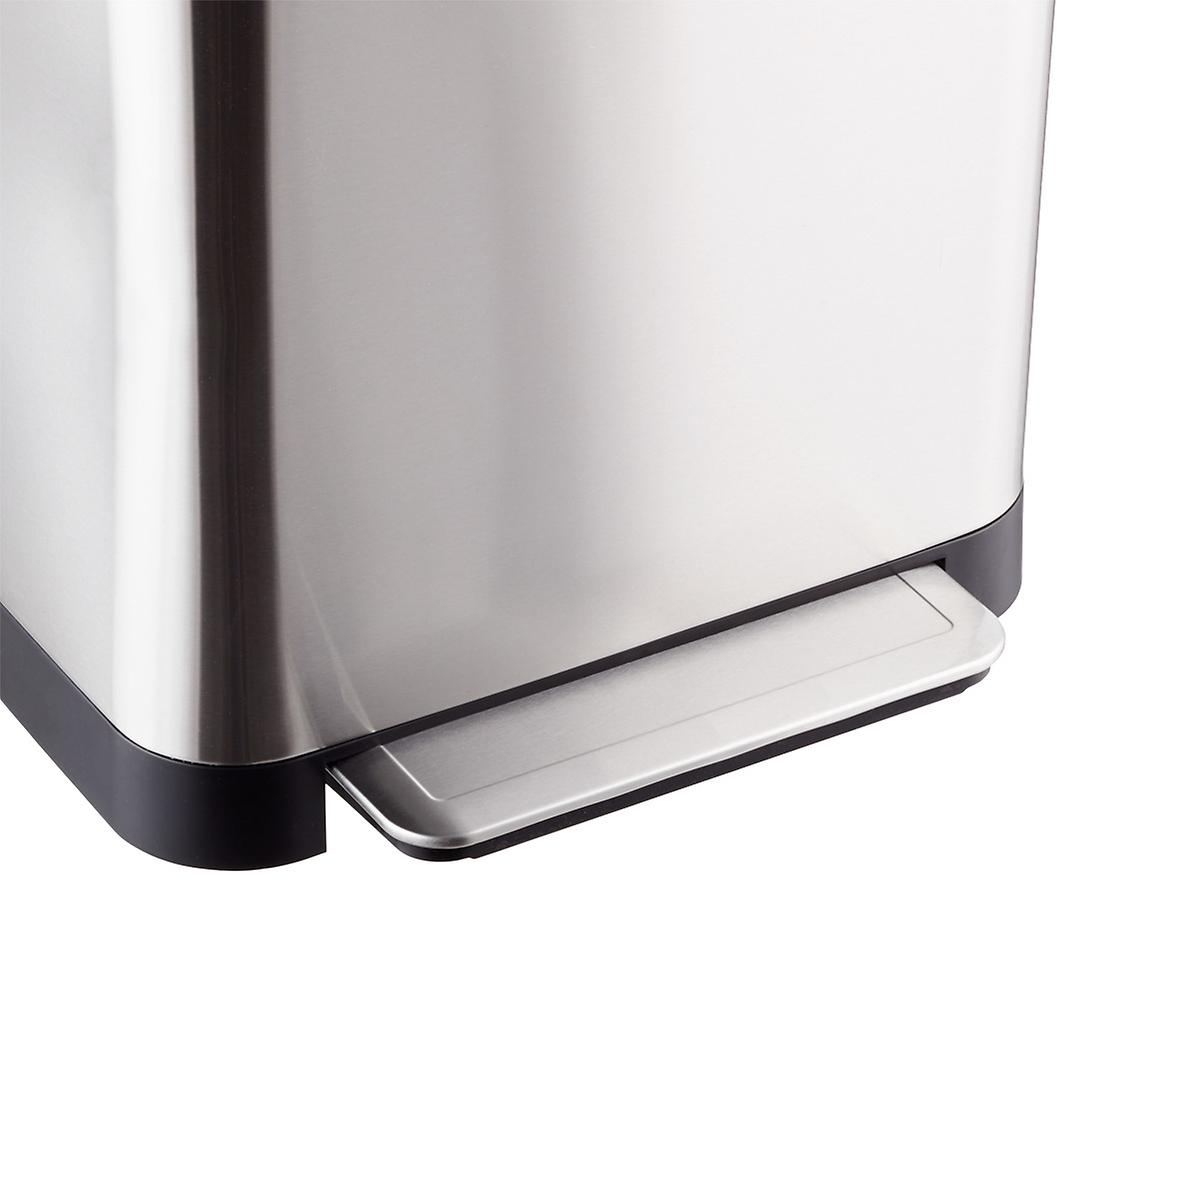 Joseph Stainless Steel 8 Gal An Trash Compactor The Container